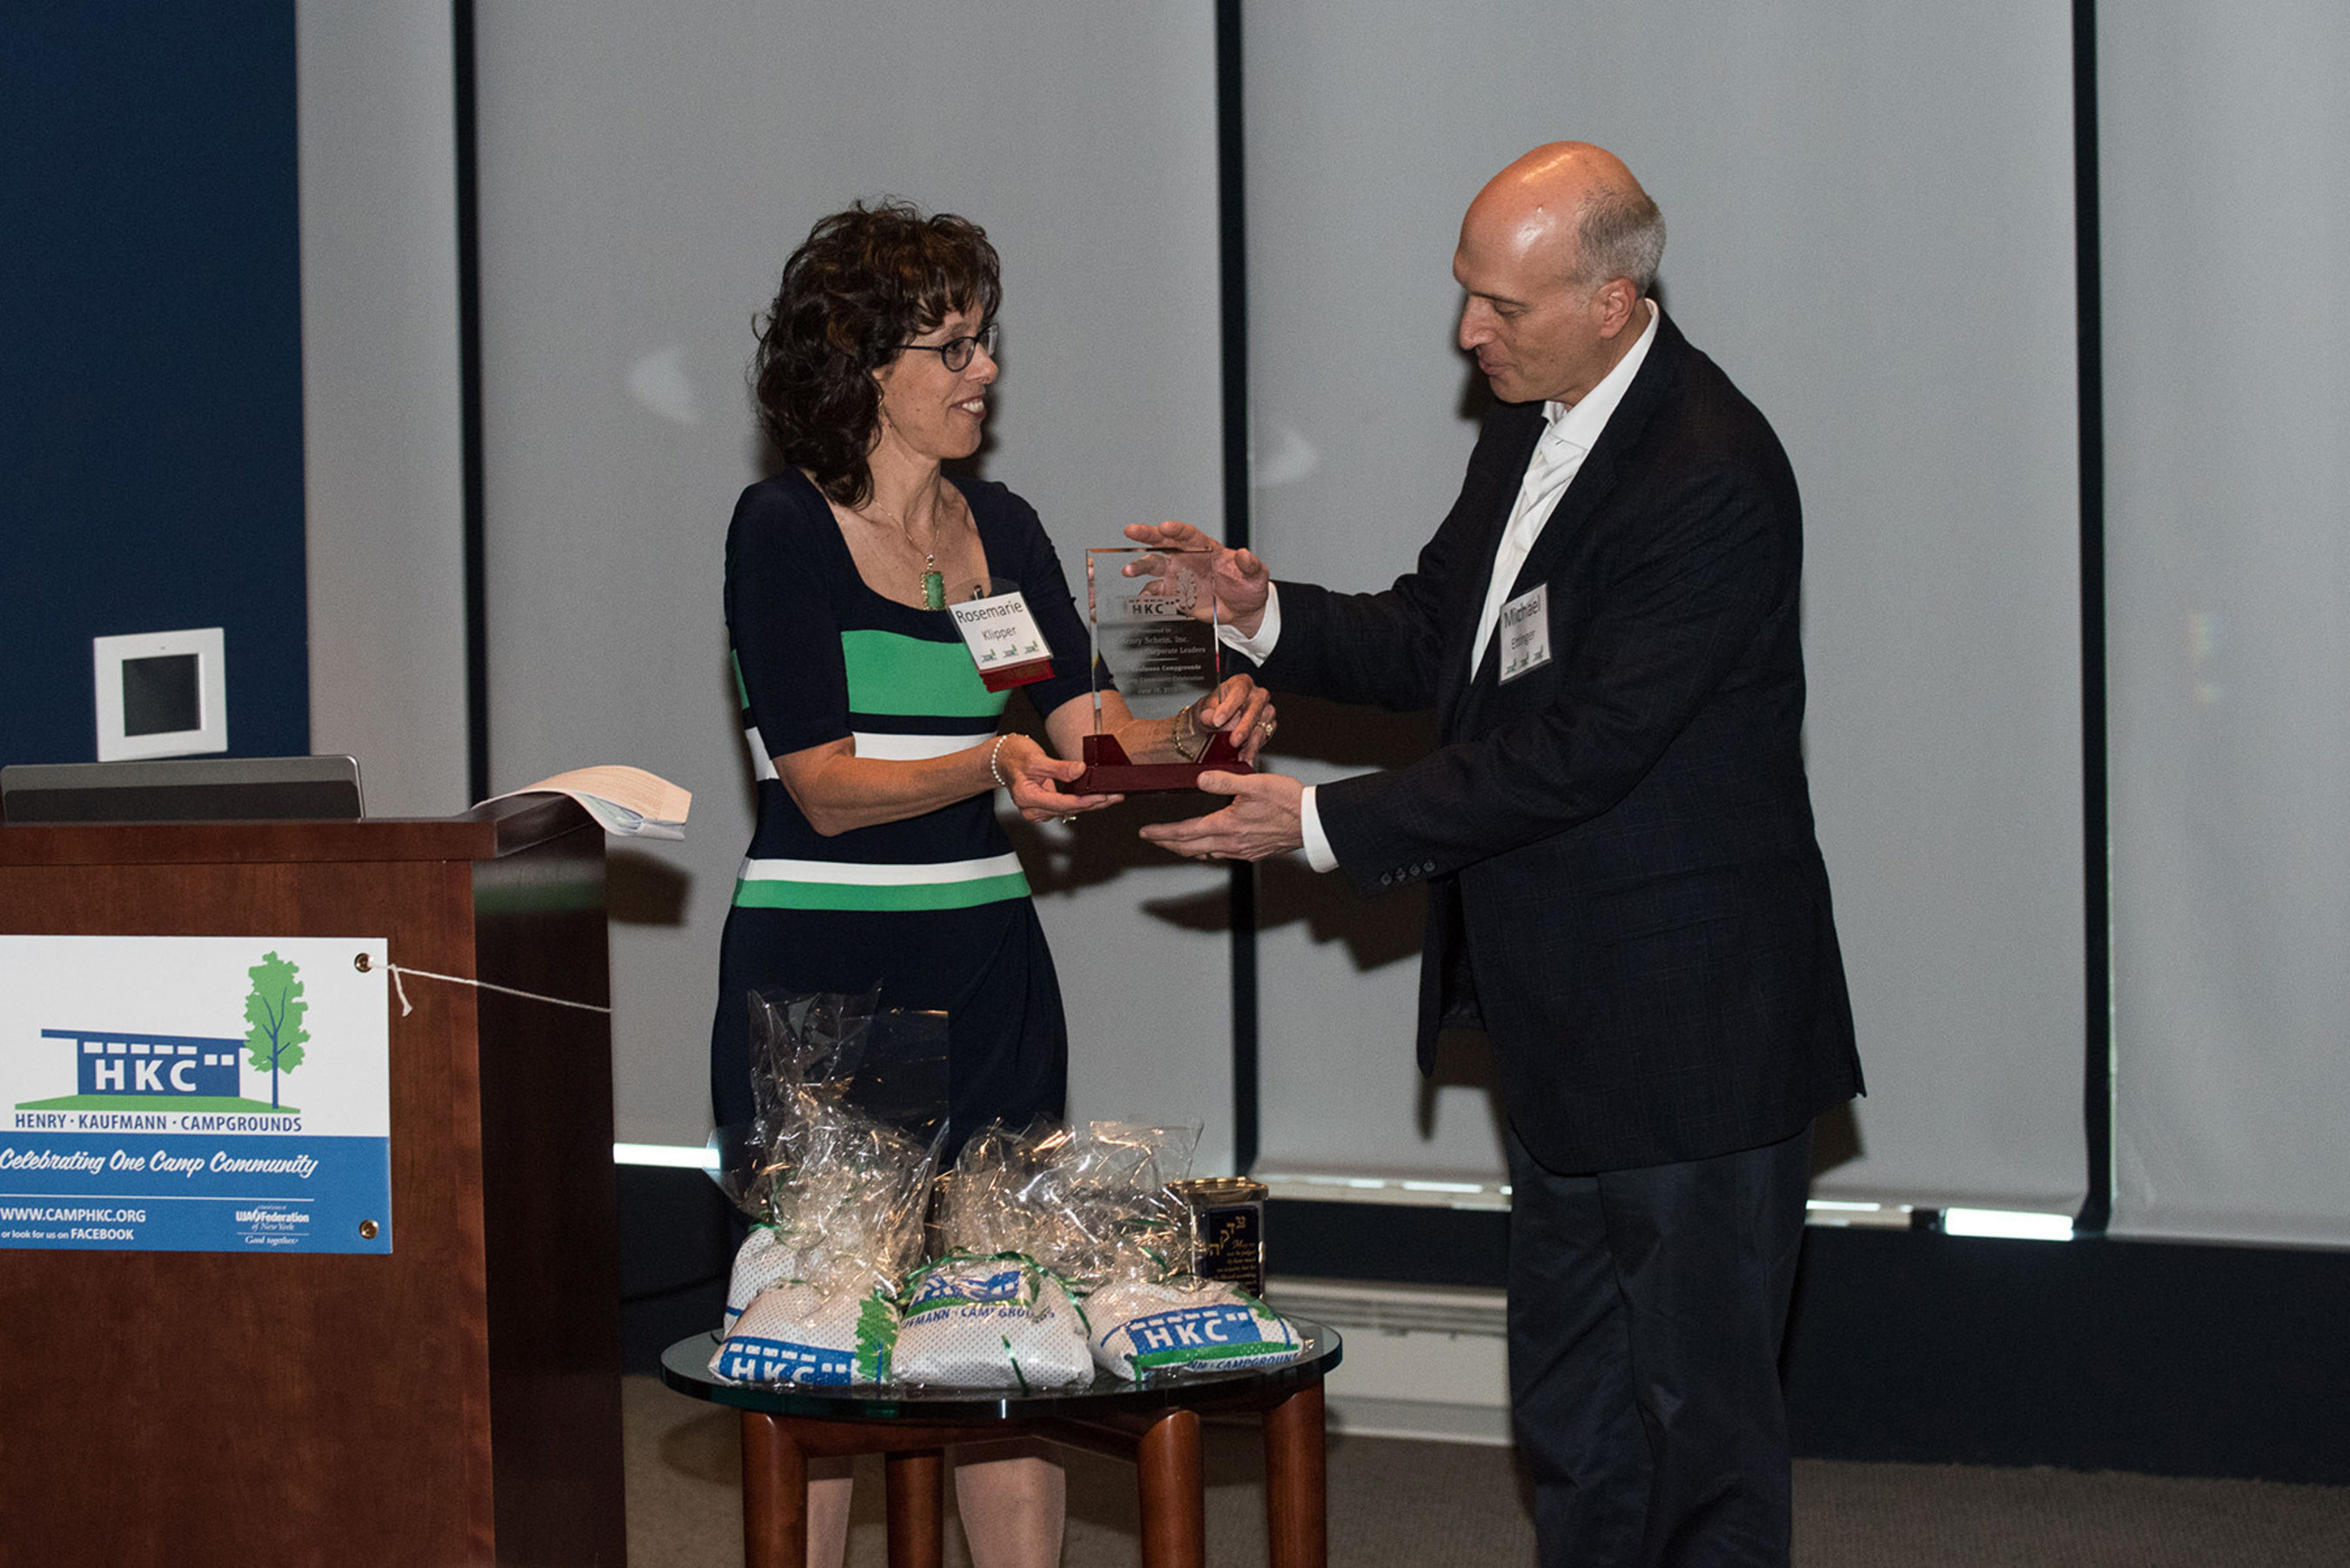 Michael S. Ettinger, Senior Vice President of Corporate & Legal Affairs, Henry Schein, Inc., accepted the Henry Kaufmann Campgrounds (HKC) Corporate Leader Award on behalf of Henry Schein. Rosemarie Klipper, HKC Board Member, presented the award on June 10 at the organization's Annual One Camp Community Celebration held at Citi Field in New York City.